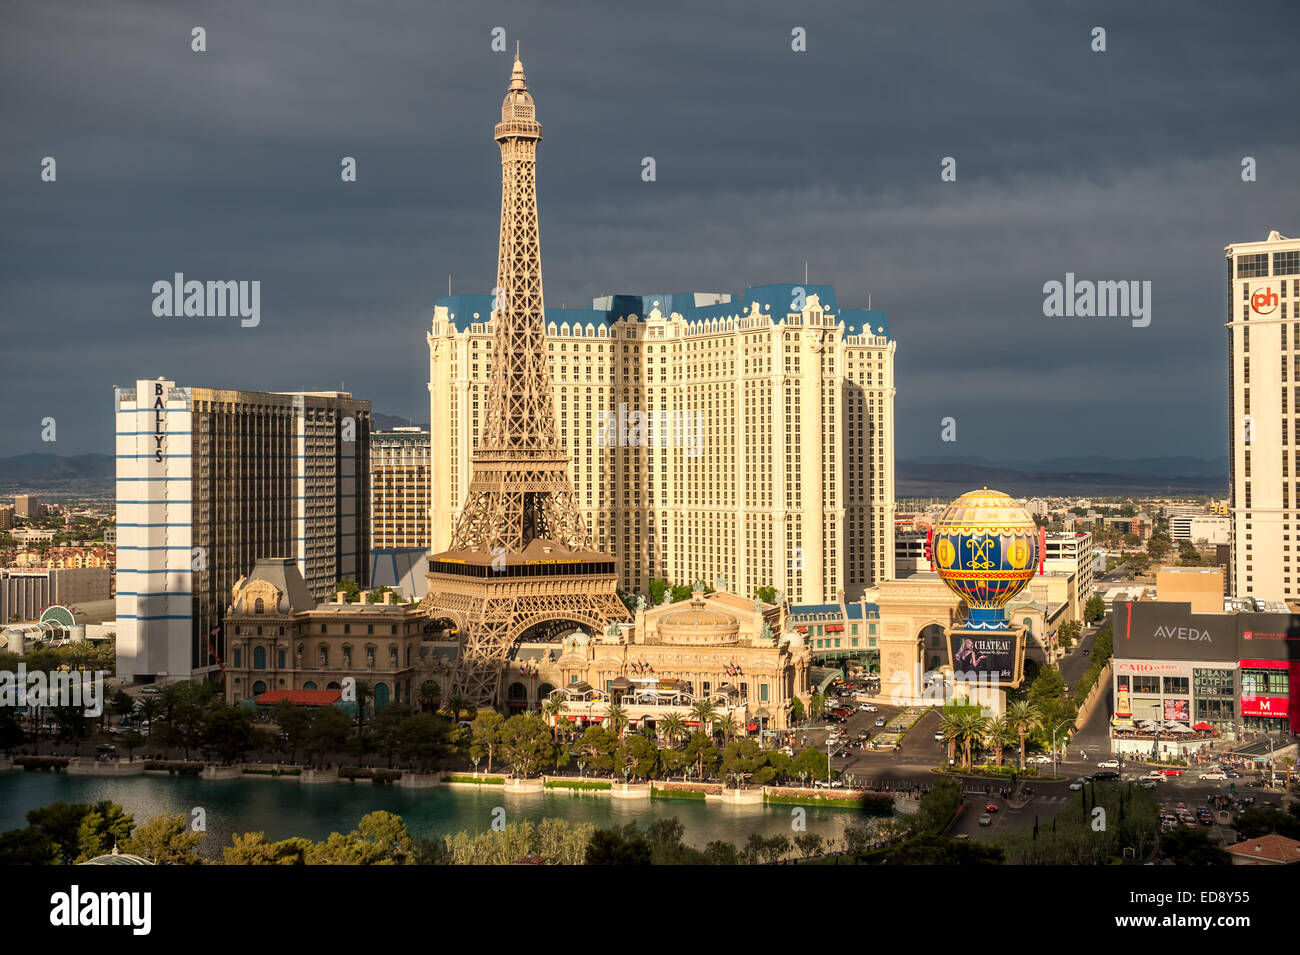 Las Vegas Boulevard by night with Paris Las Vegas and Bally's hotels and casinos as seen over the lake at Bellagio. - Stock Image